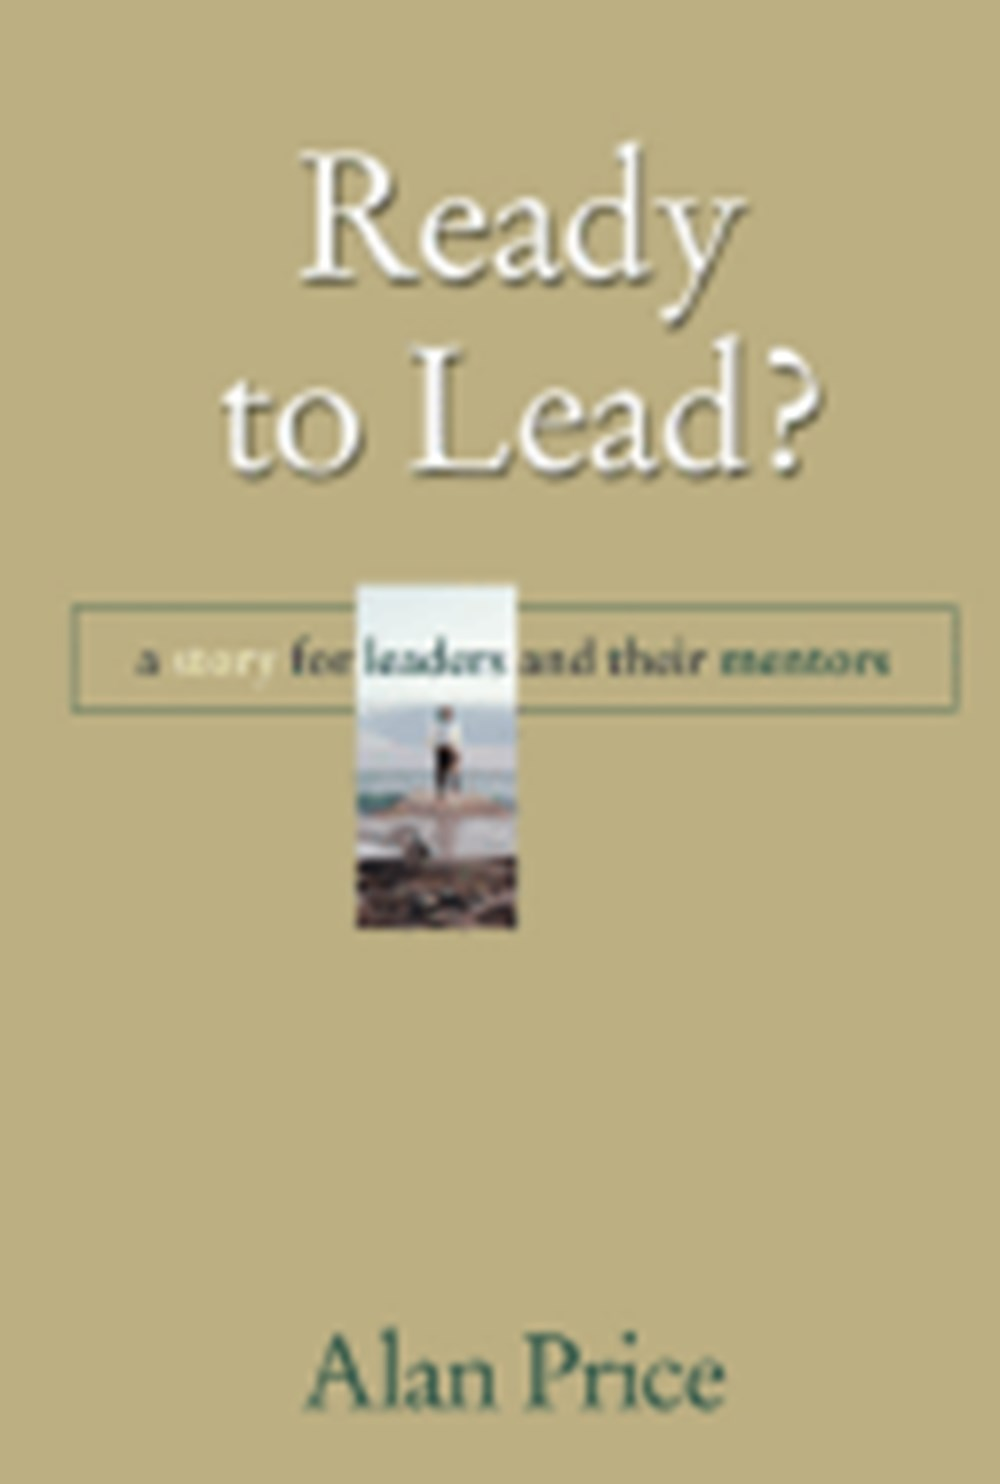 Ready to Lead? A Story for Leaders and Their Mentors